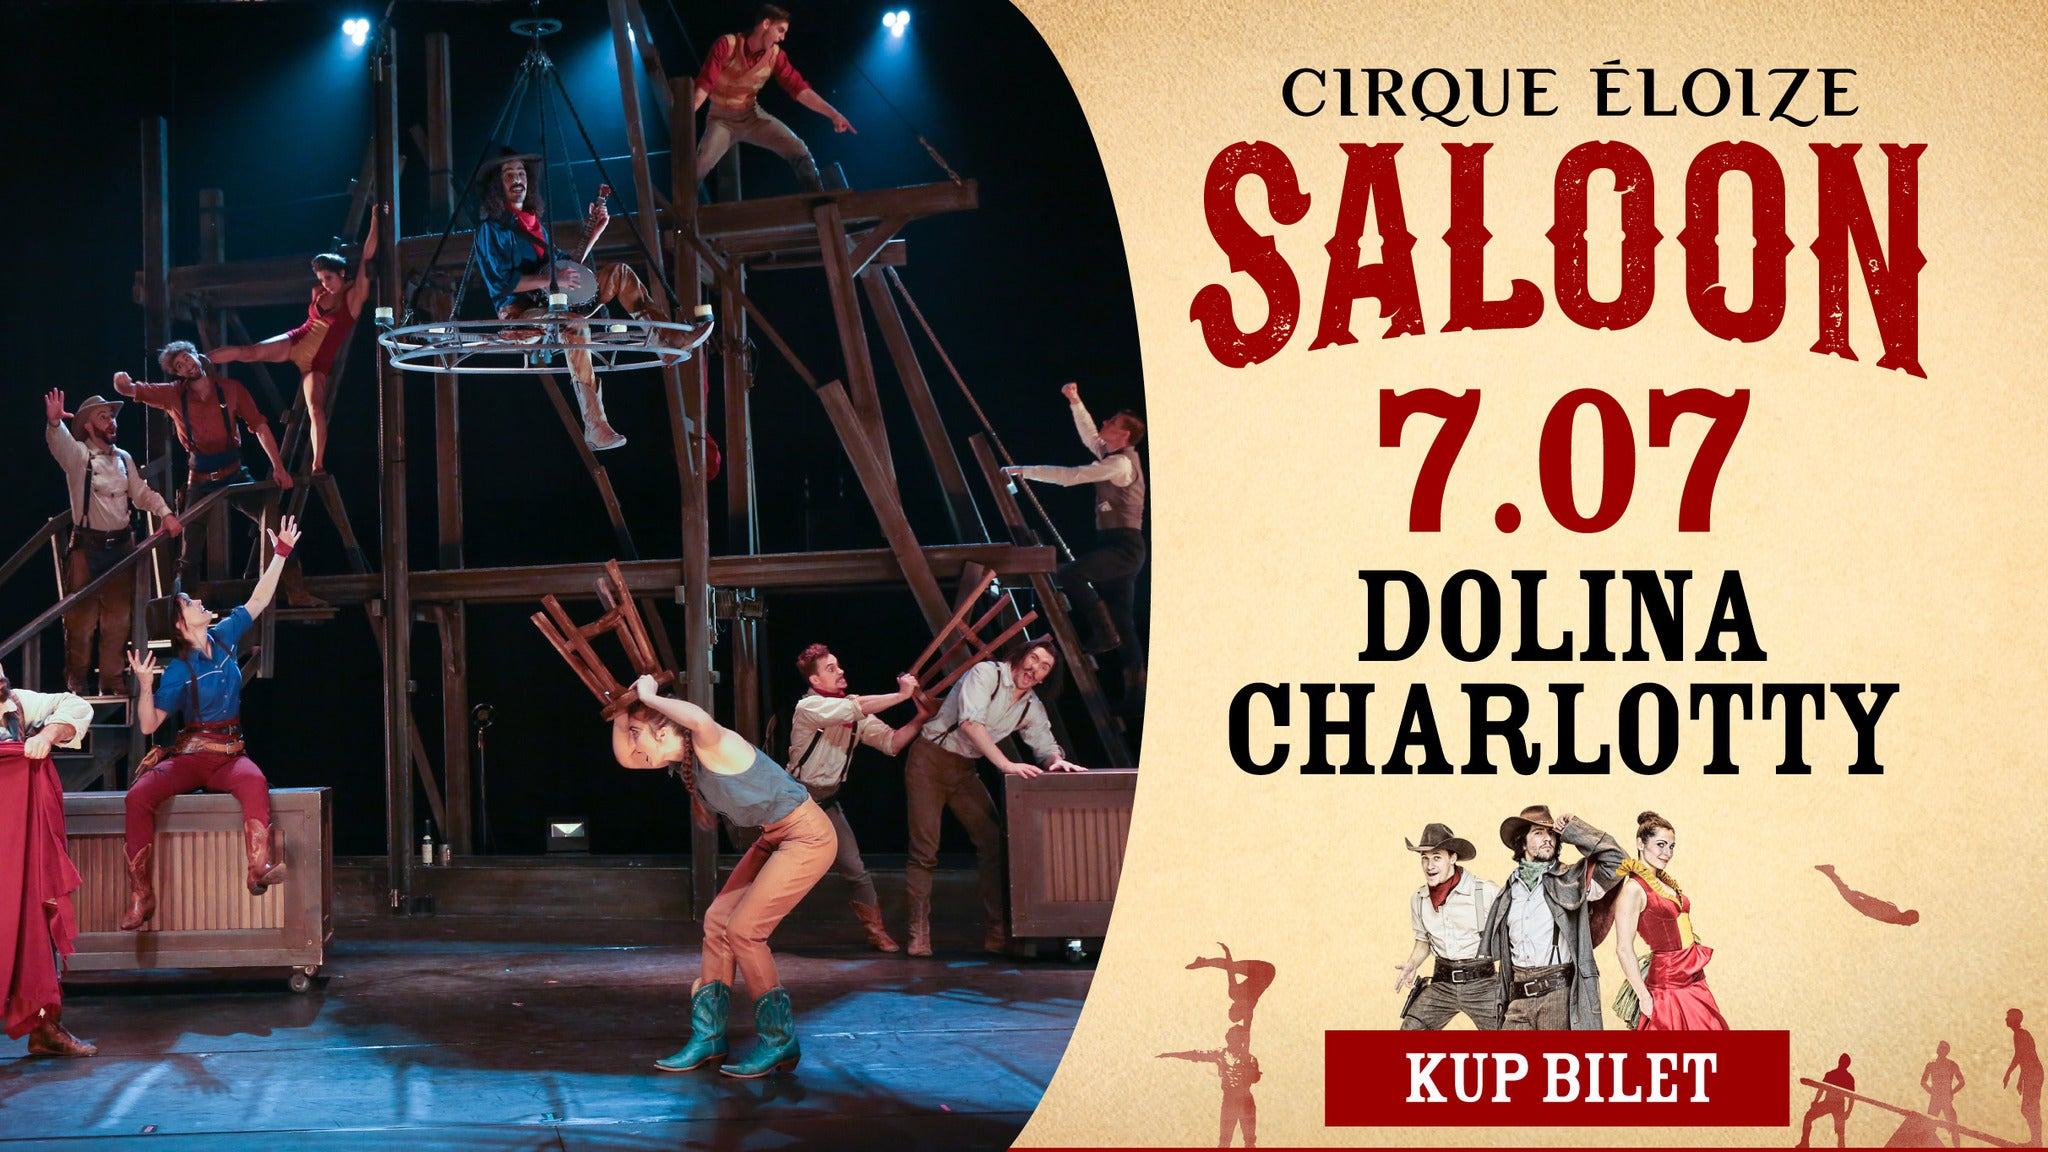 Cirque Eloize at Sunset Center